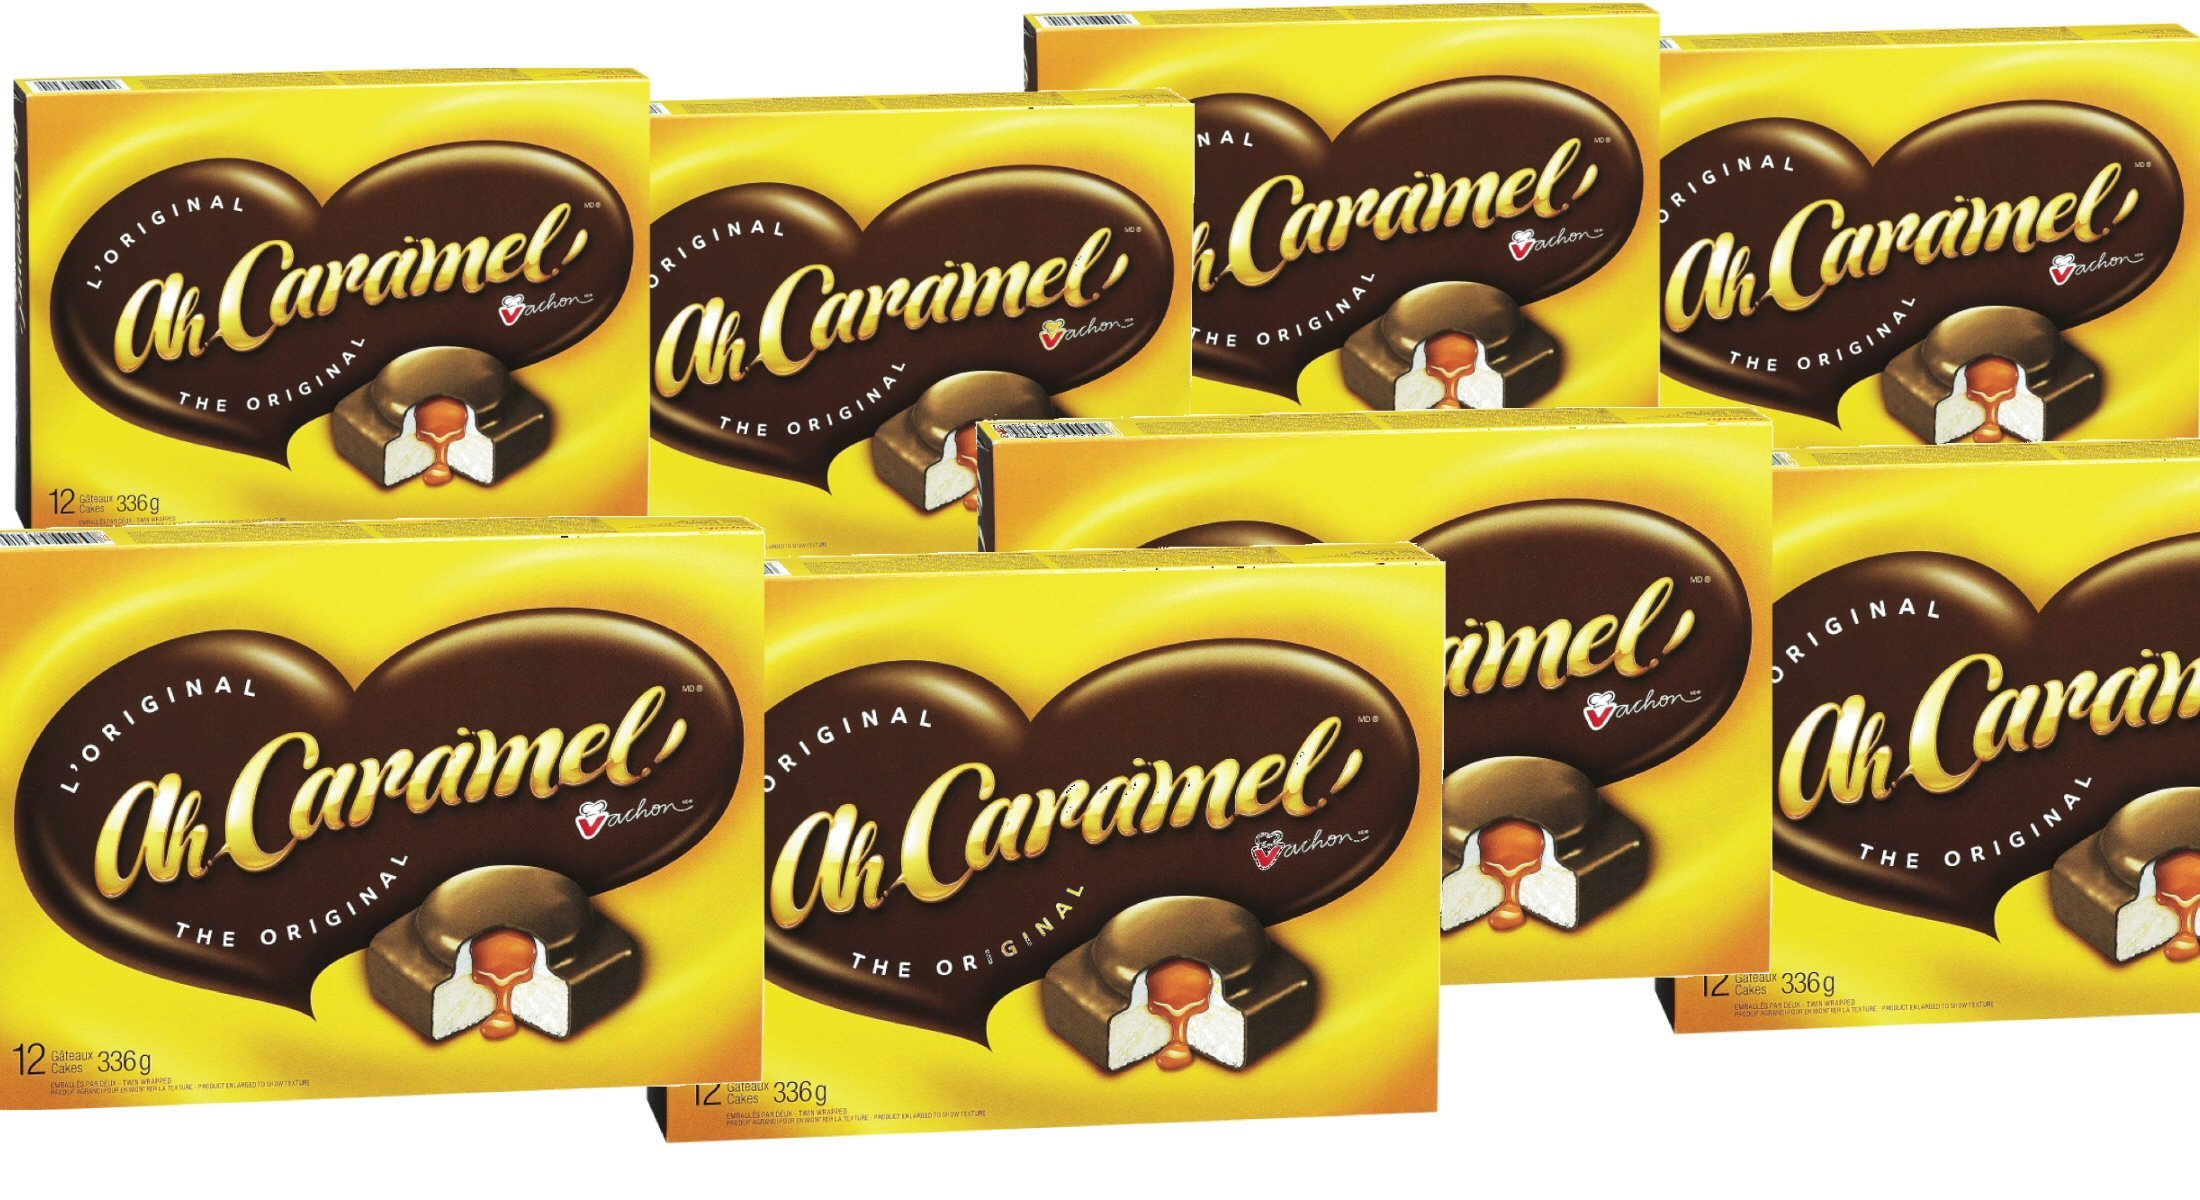 (8 Box) 12 Cakes Vachon the Original Ah Caramel Cakes, 4.49 ONLY shipping